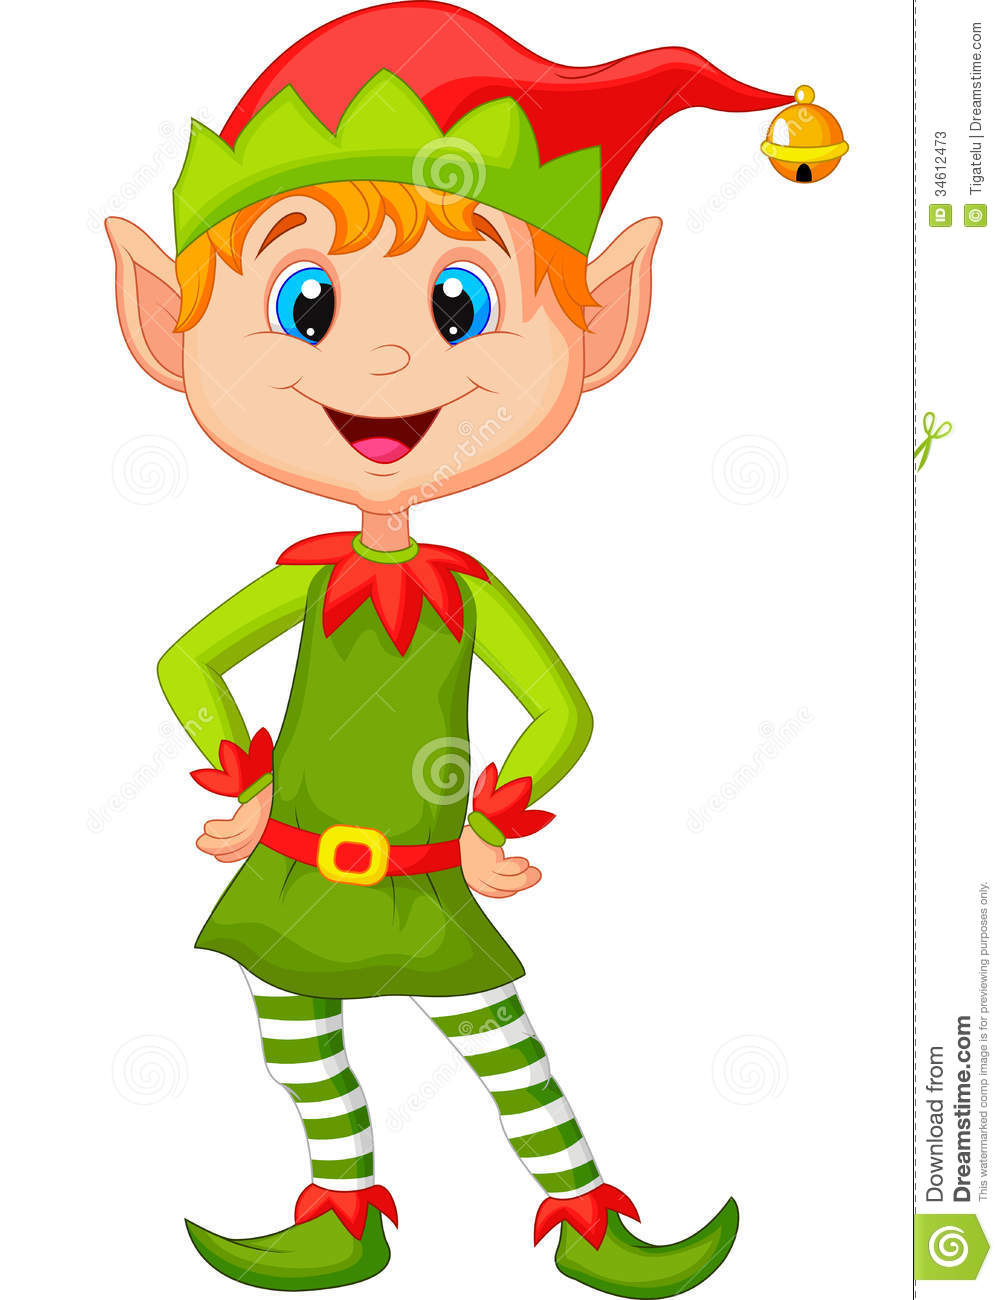 Cute And Happy Looking Christmas Elf Cartoon Stock Photos - Image ...